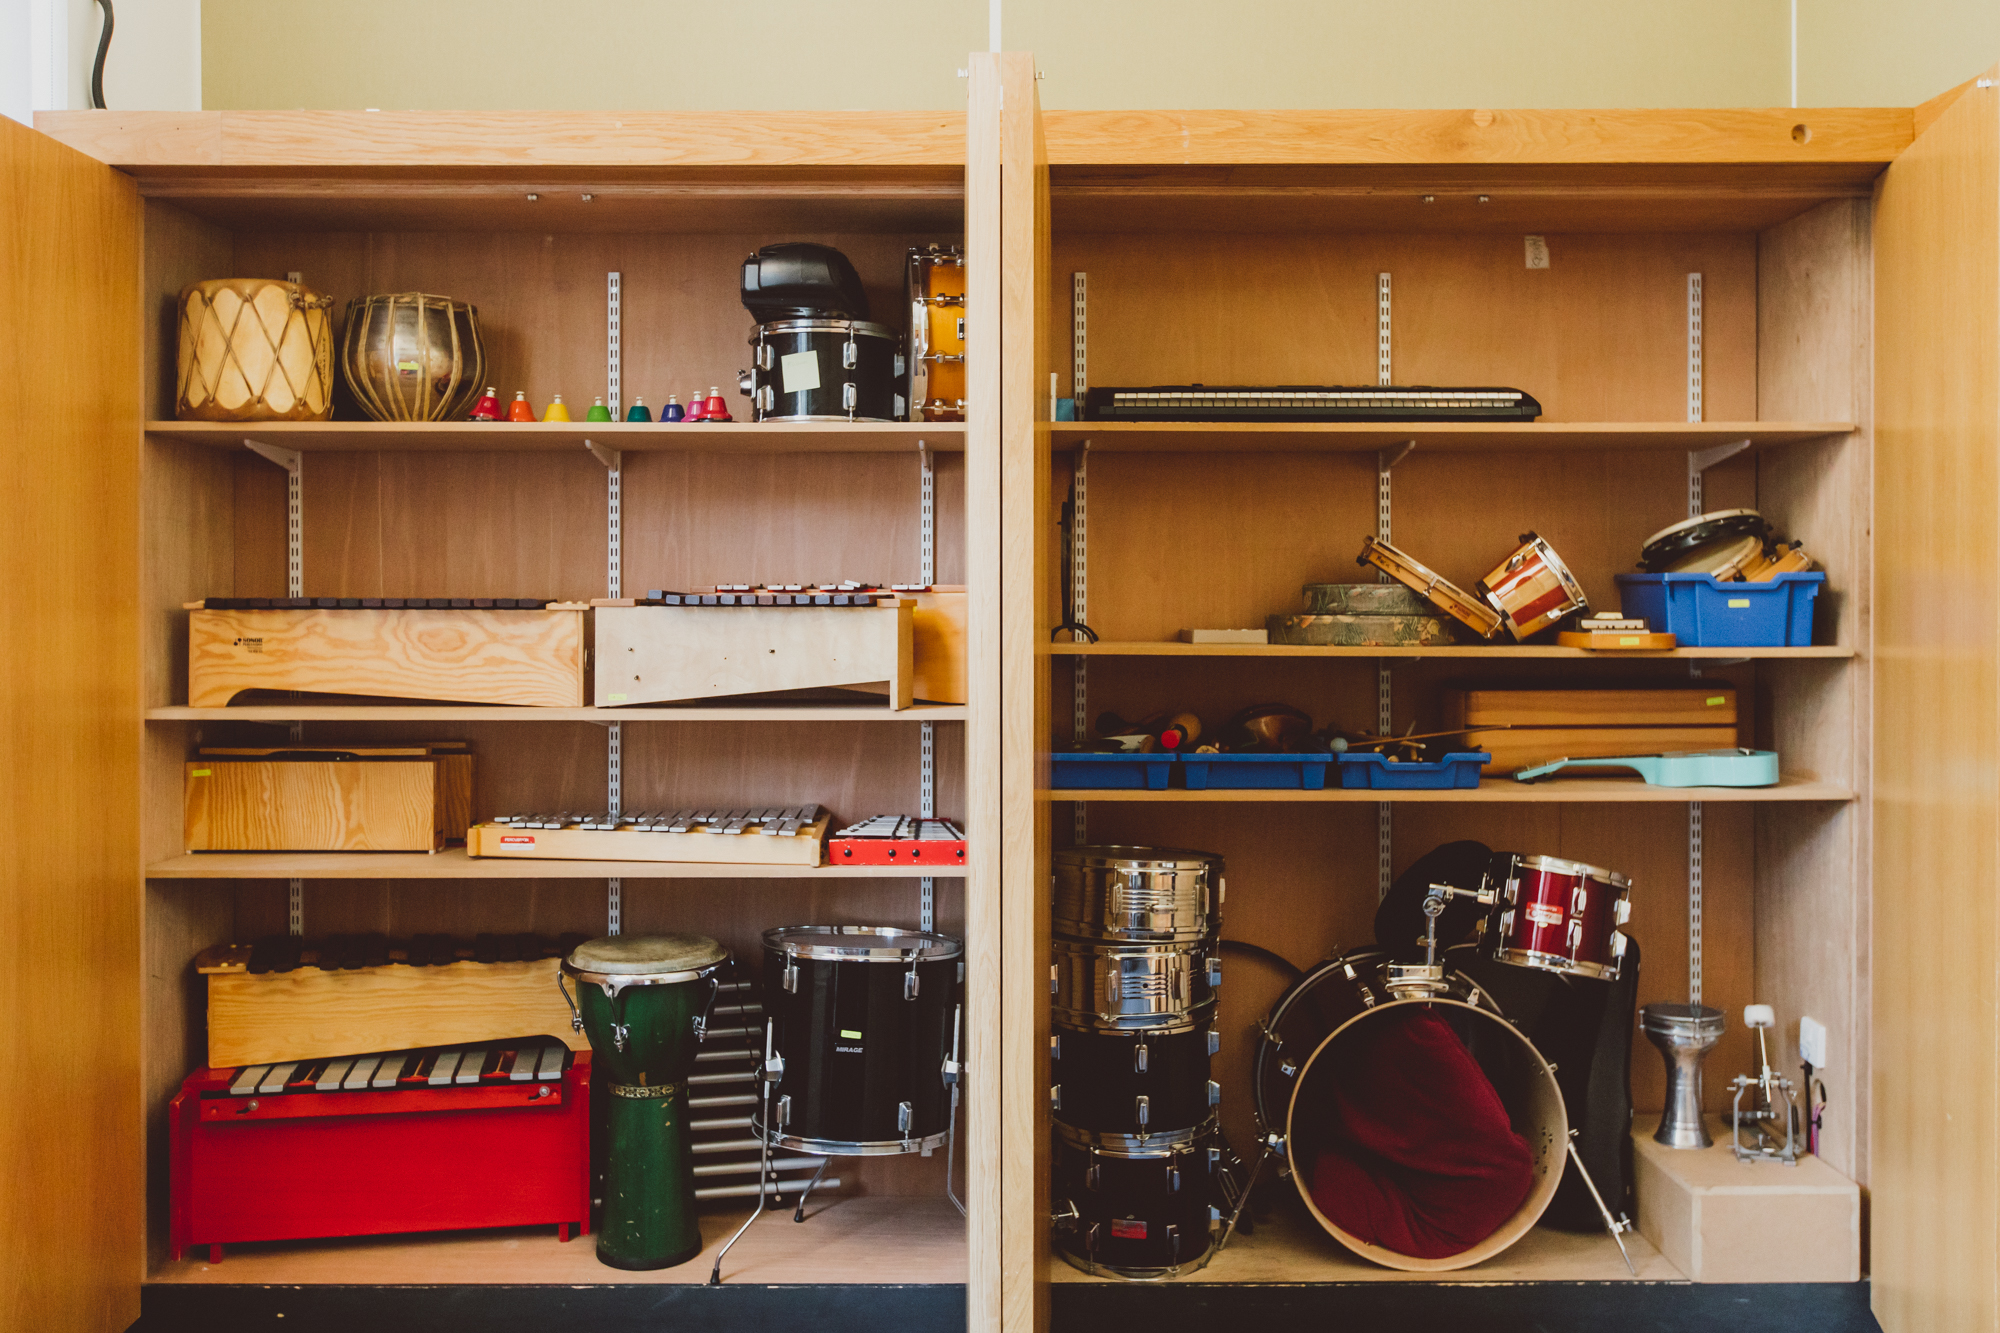 Percussion instruments in cupboard